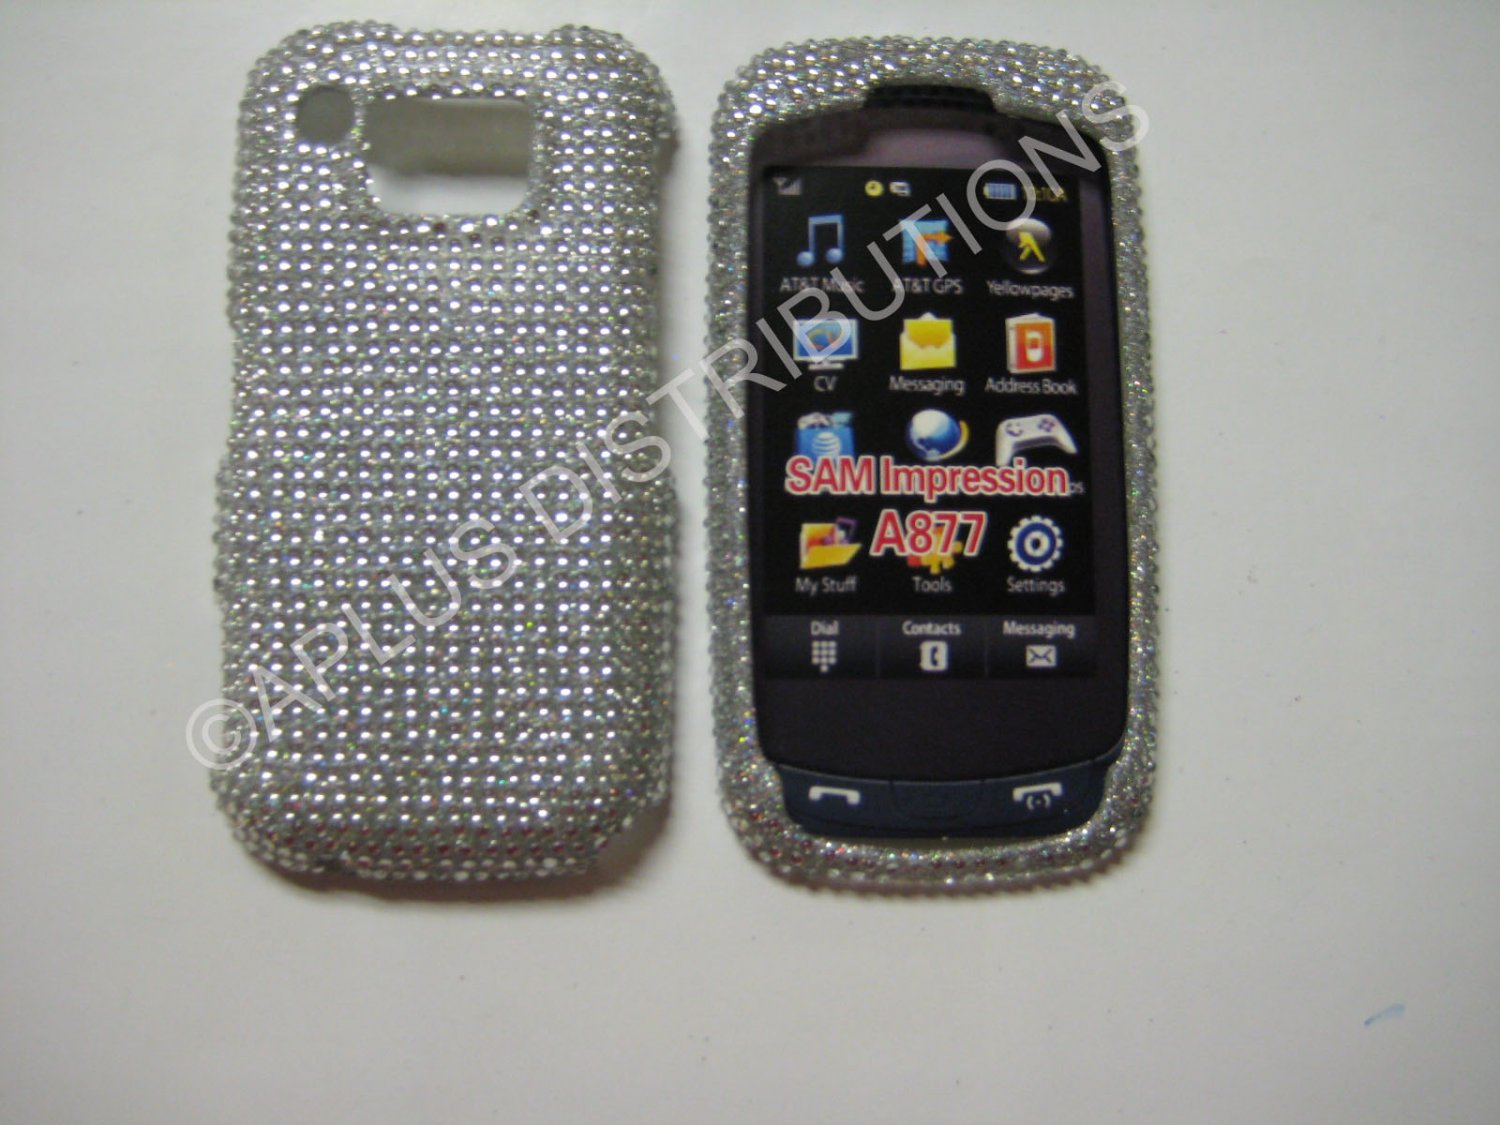 New Silver Solid Diamonds Bling Diamond Case For Samsung Impression A877 - (0004)